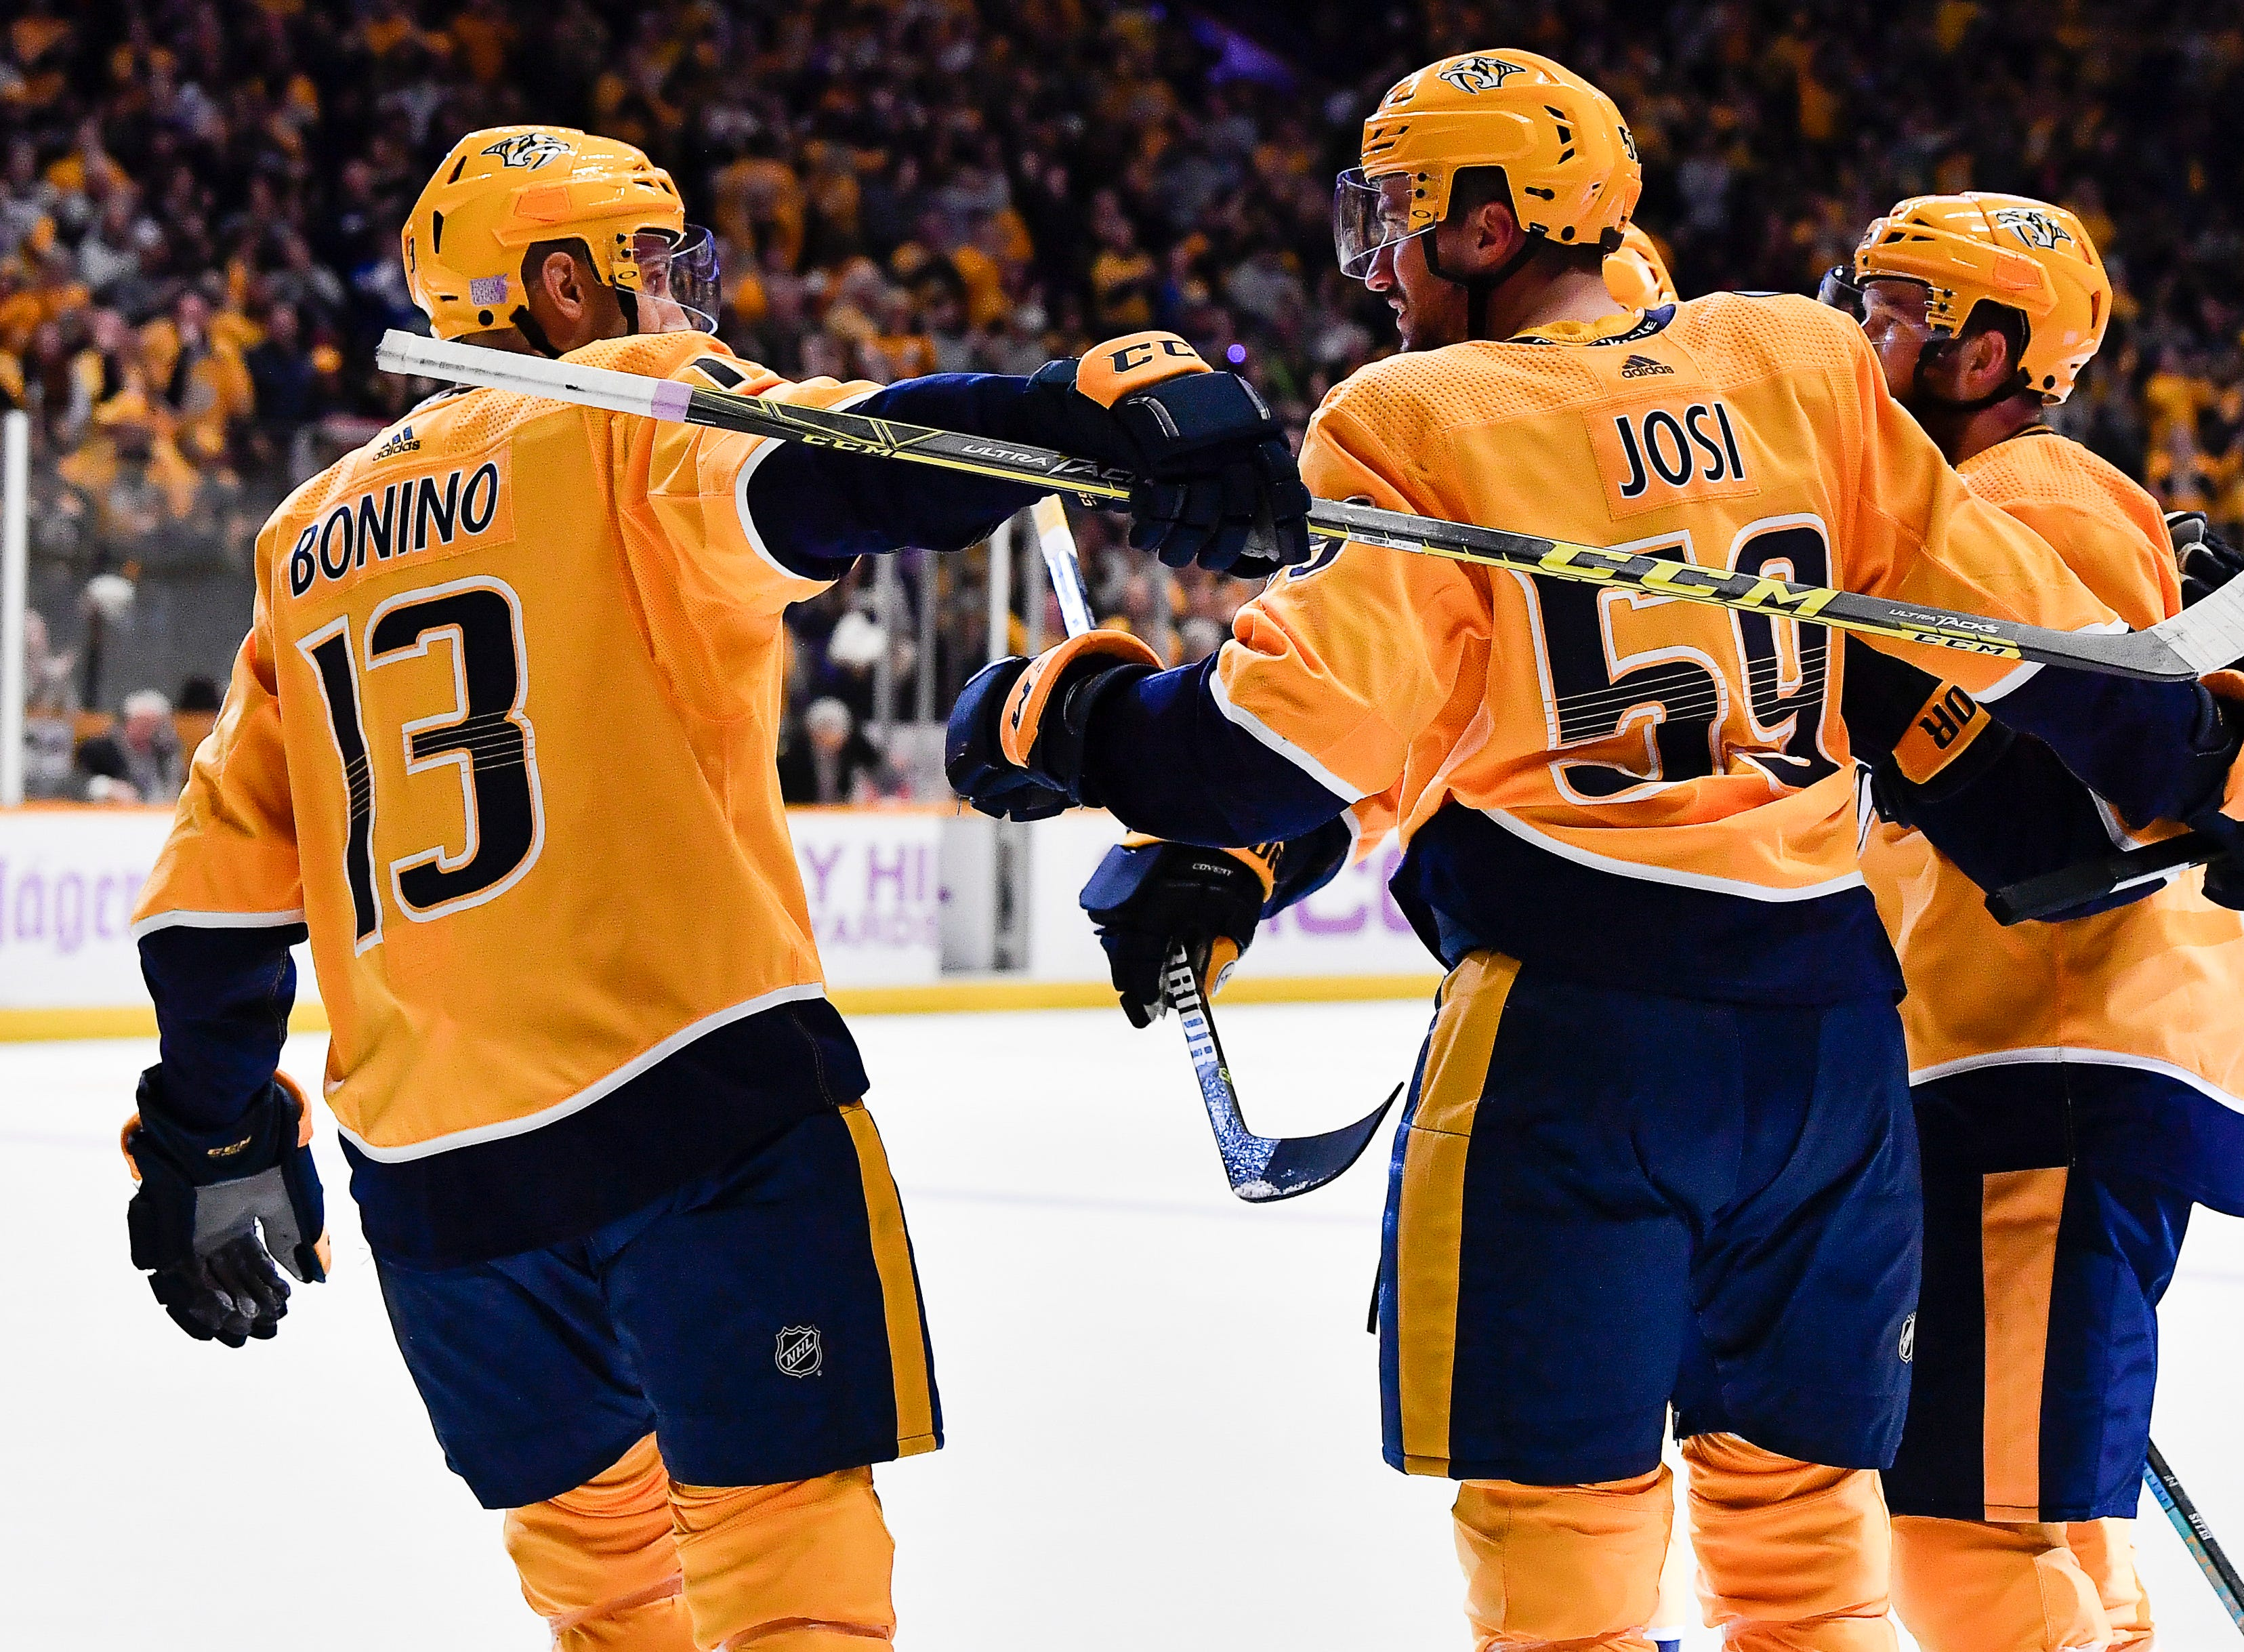 Predators defenseman Roman Josi (59) is congratulated by teammates after his goal during the first period against the Bruins at Bridgestone Arena Saturday, Nov. 3, 2018, in Nashville, Tenn.